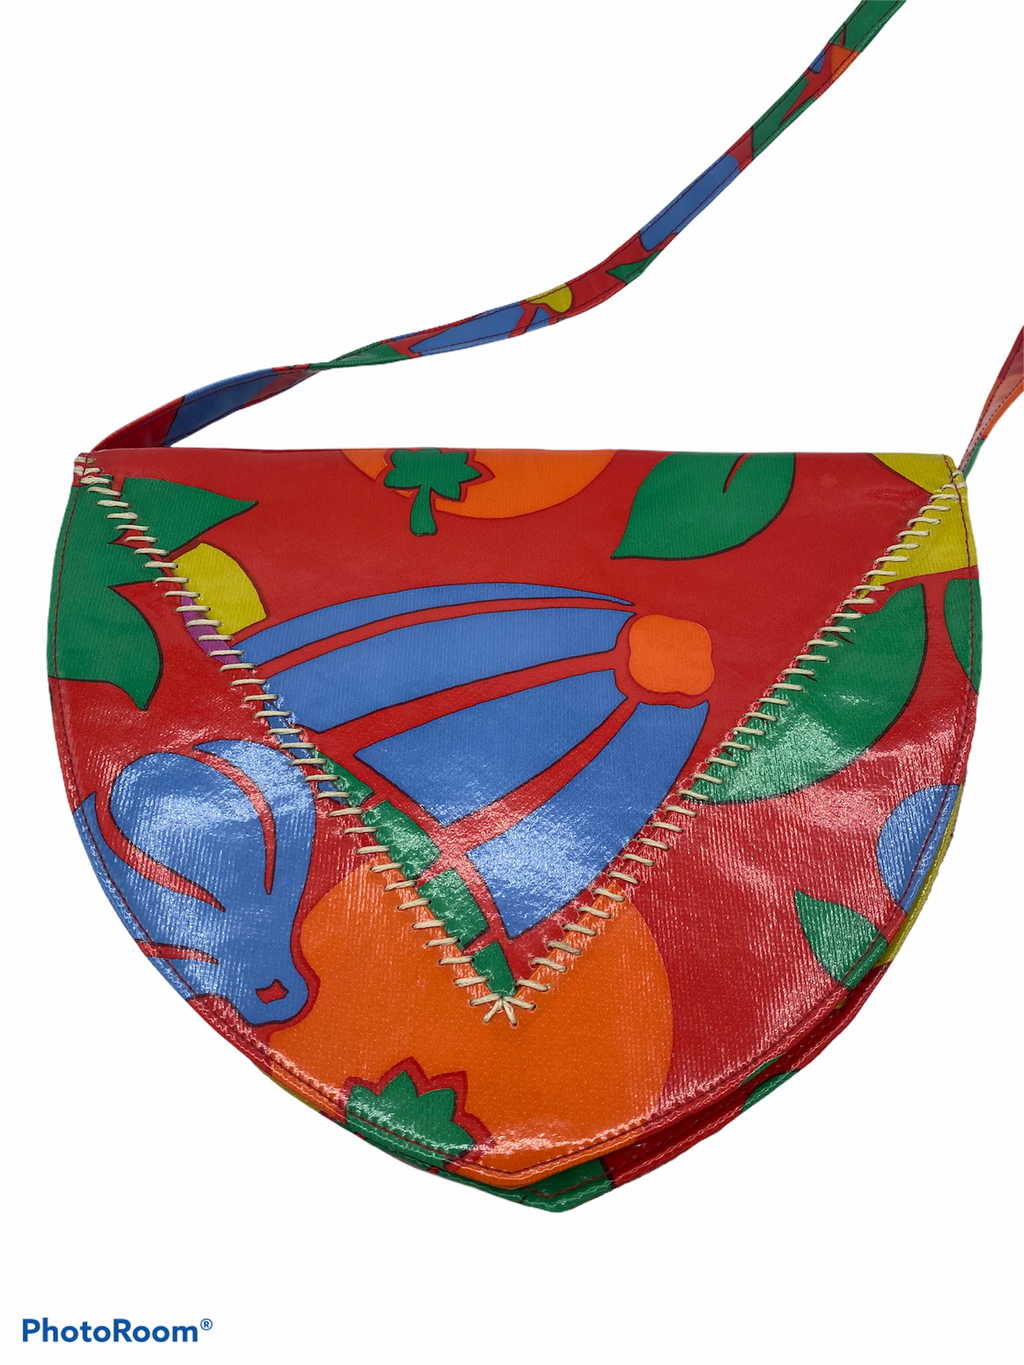 Charles Jourdan Patent Purse 80s with  Tropical Print Neon Shoulder Bag  FRONT 1 of 4